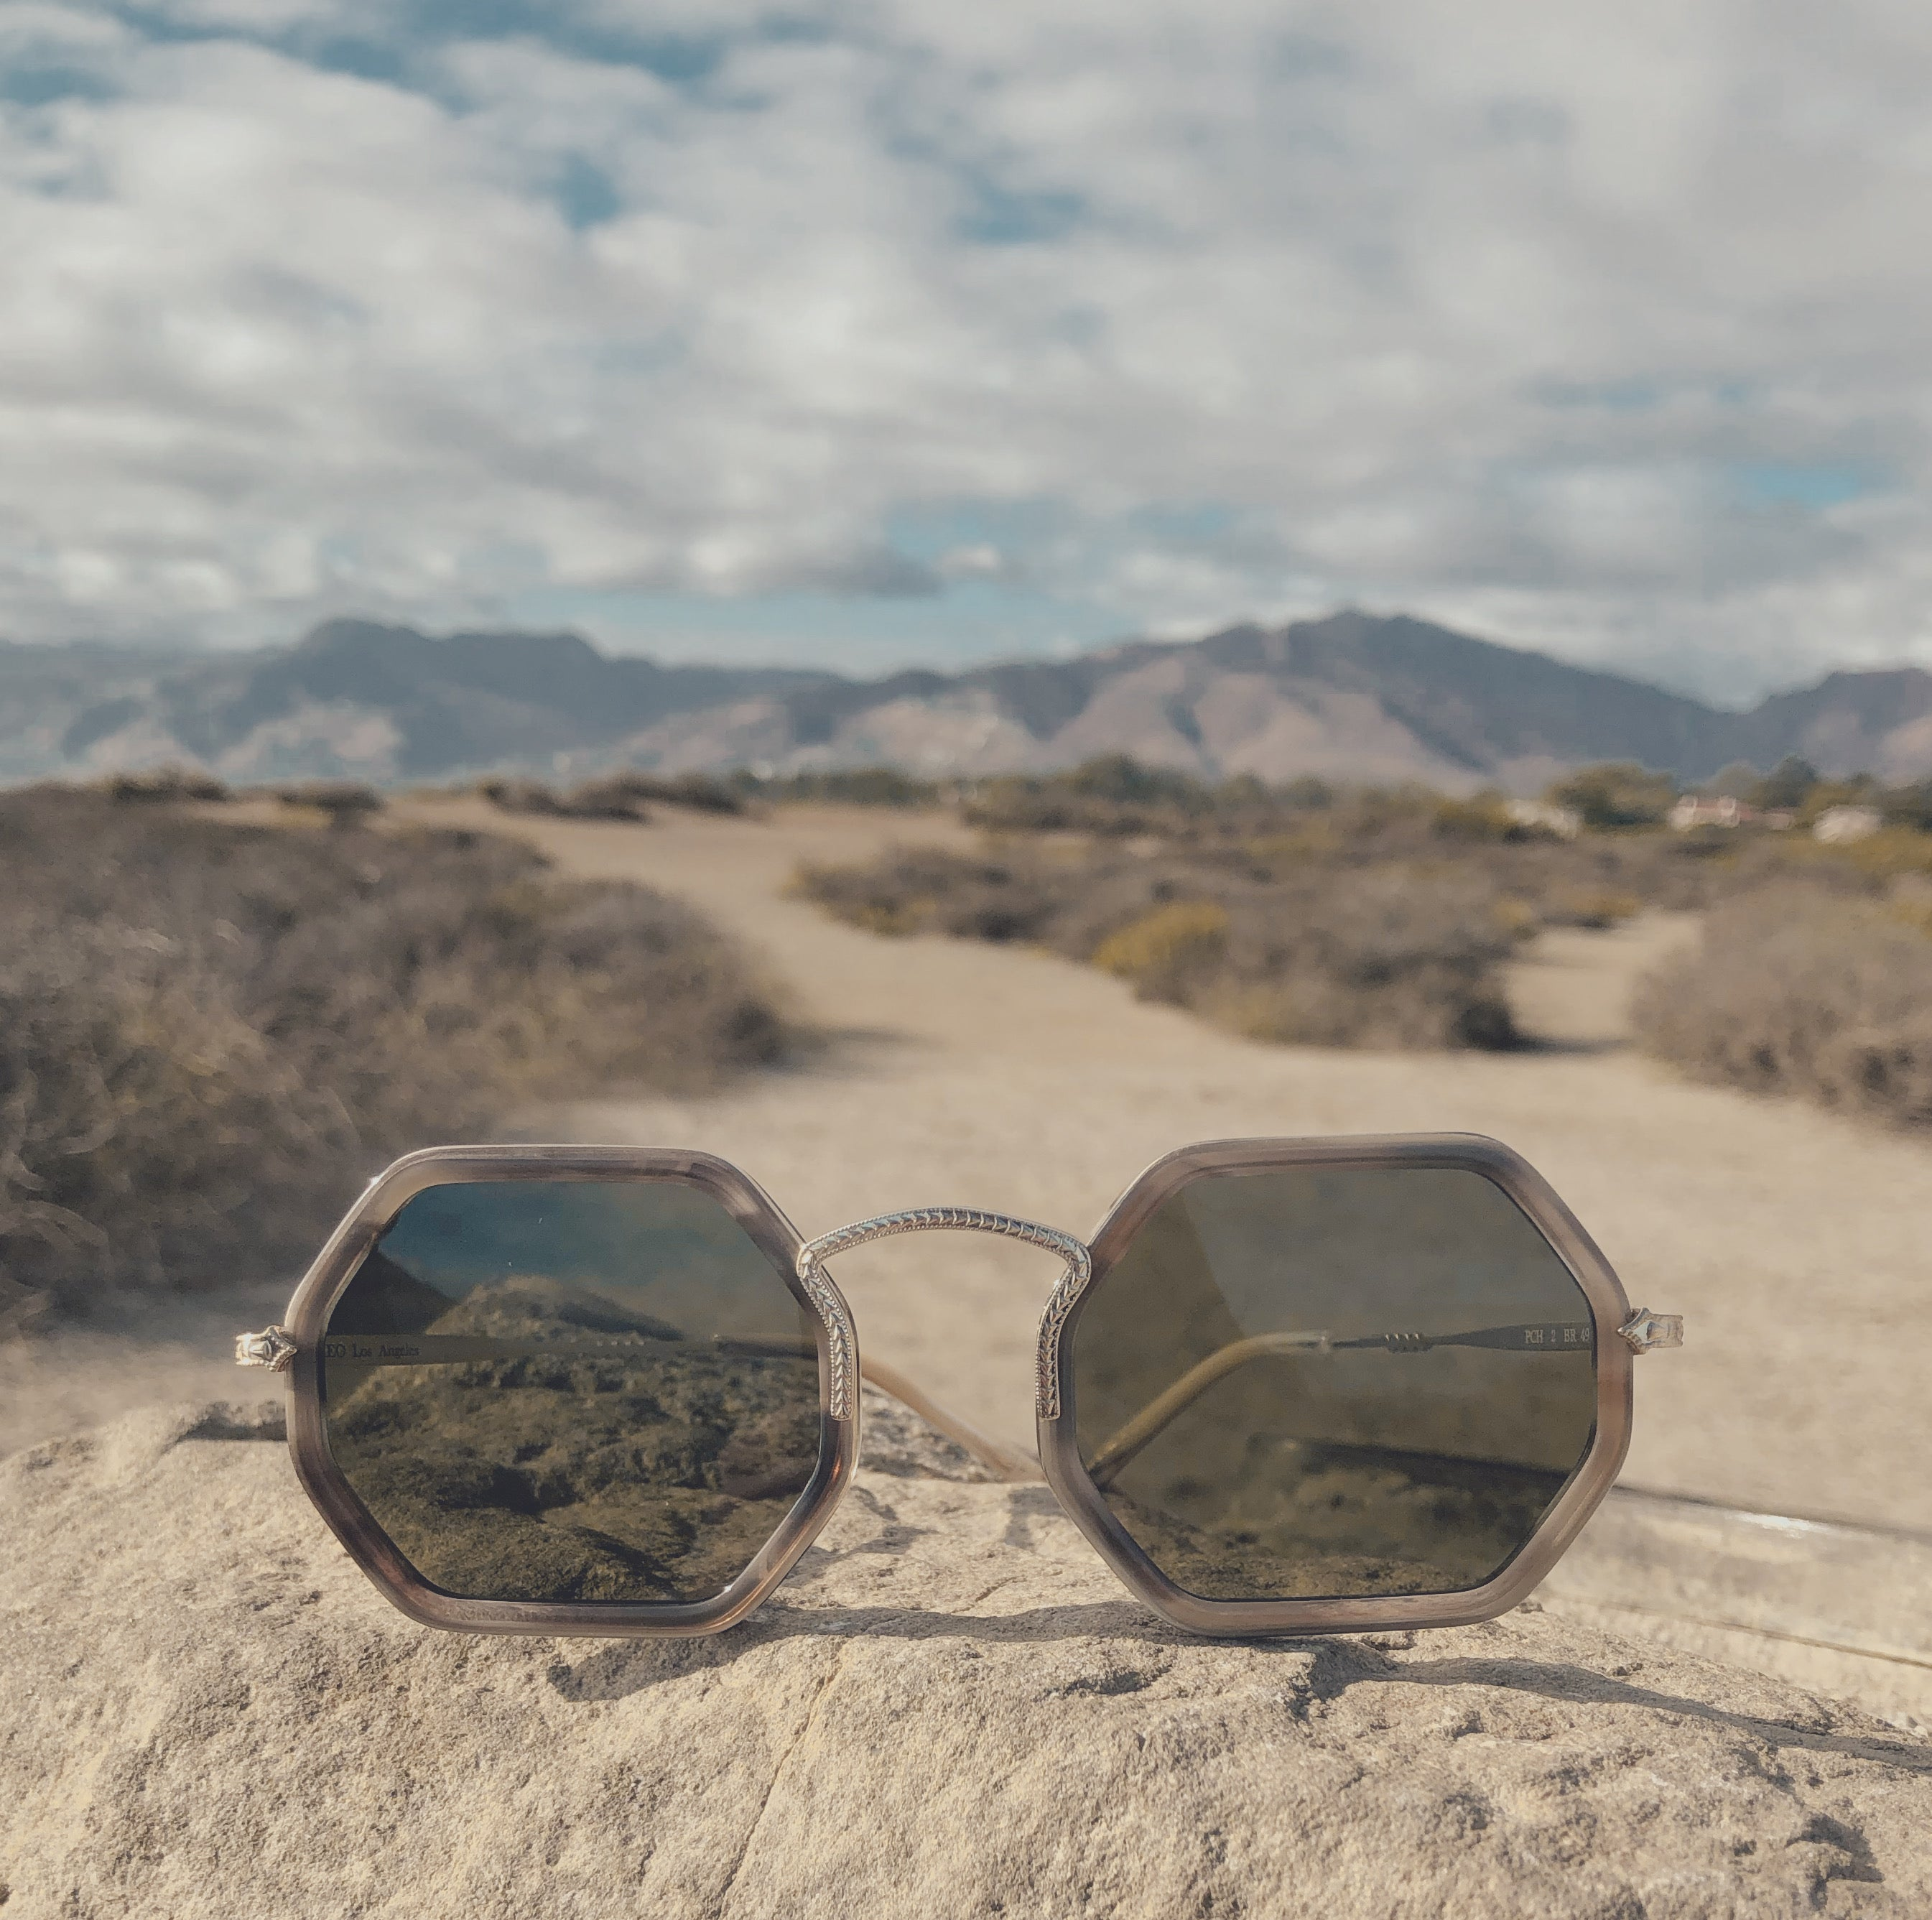 Front view. PCH Brown Hexagonal Sunglasses. Premium Italian acetate. Green lenses manufactured by Carl Zeiss Vision. Dirt trail with mountains behind.